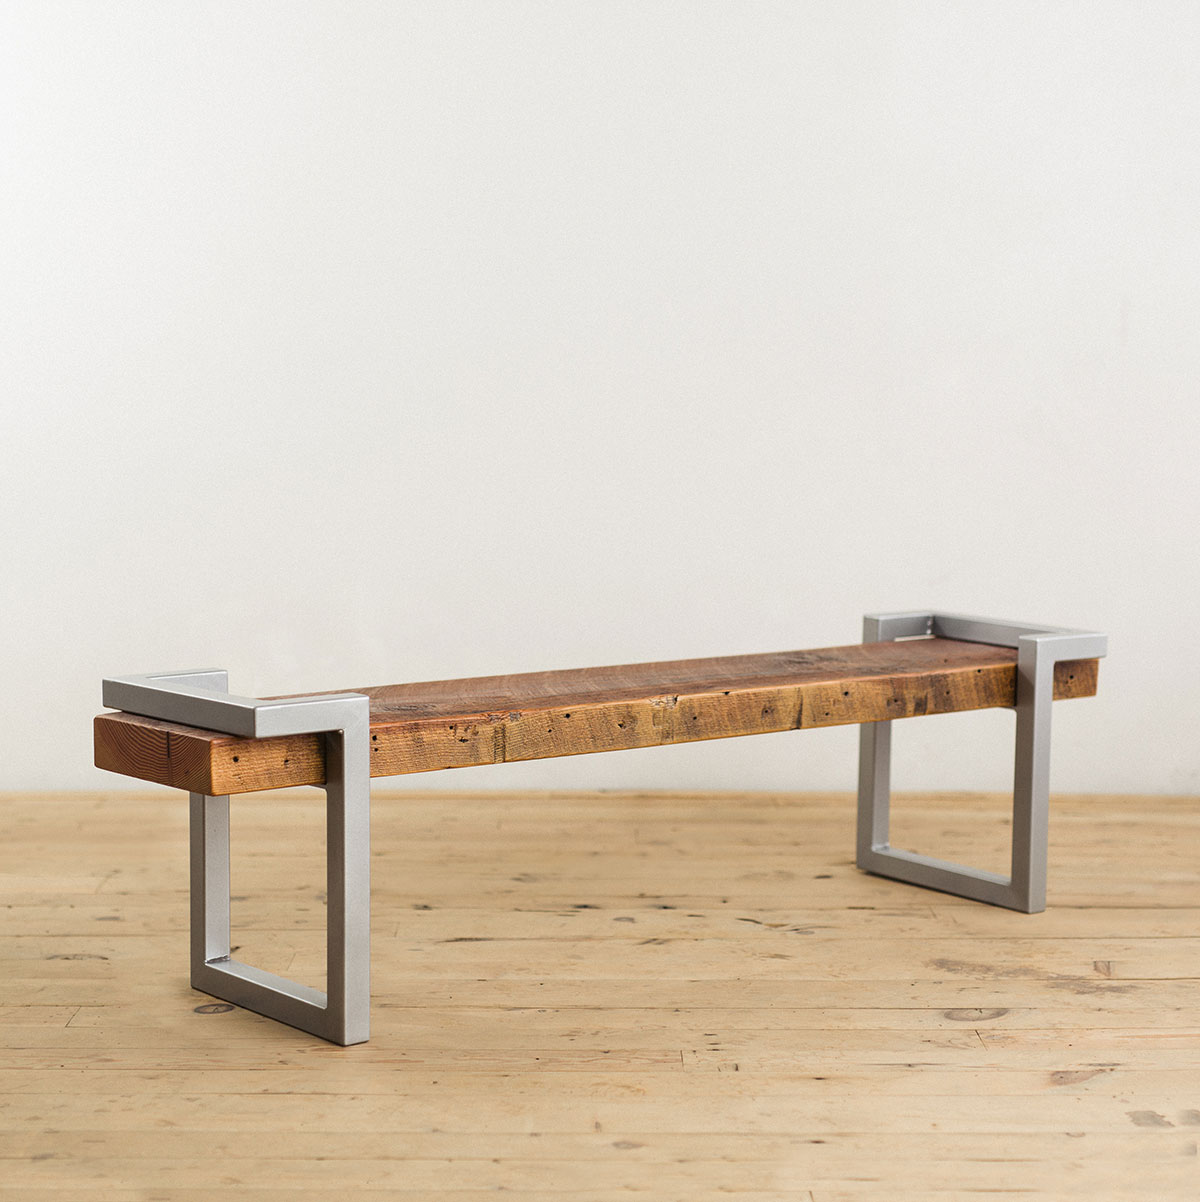 steel-salvage-barn-wood-bench-silver